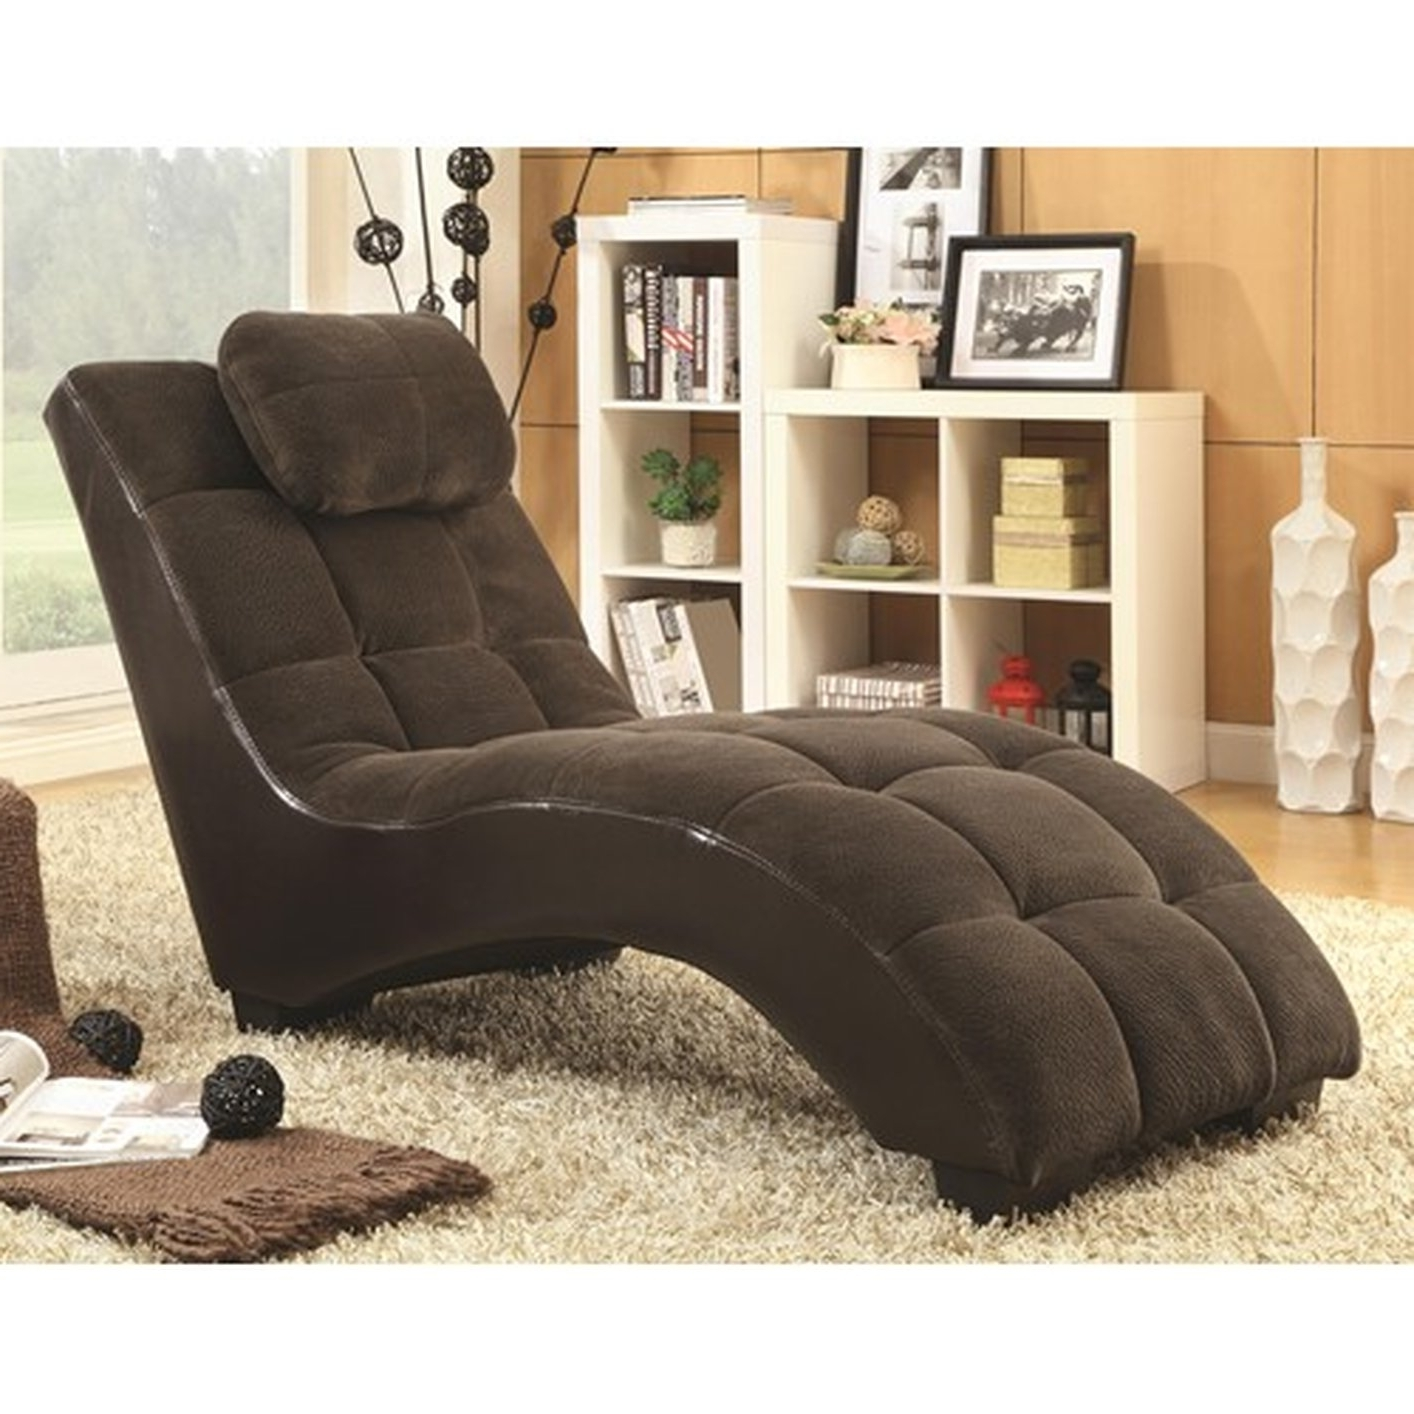 Fashionable Brown Fabric Chaise Lounge – Steal A Sofa Furniture Outlet Los For Brown Chaise Lounges (View 8 of 15)